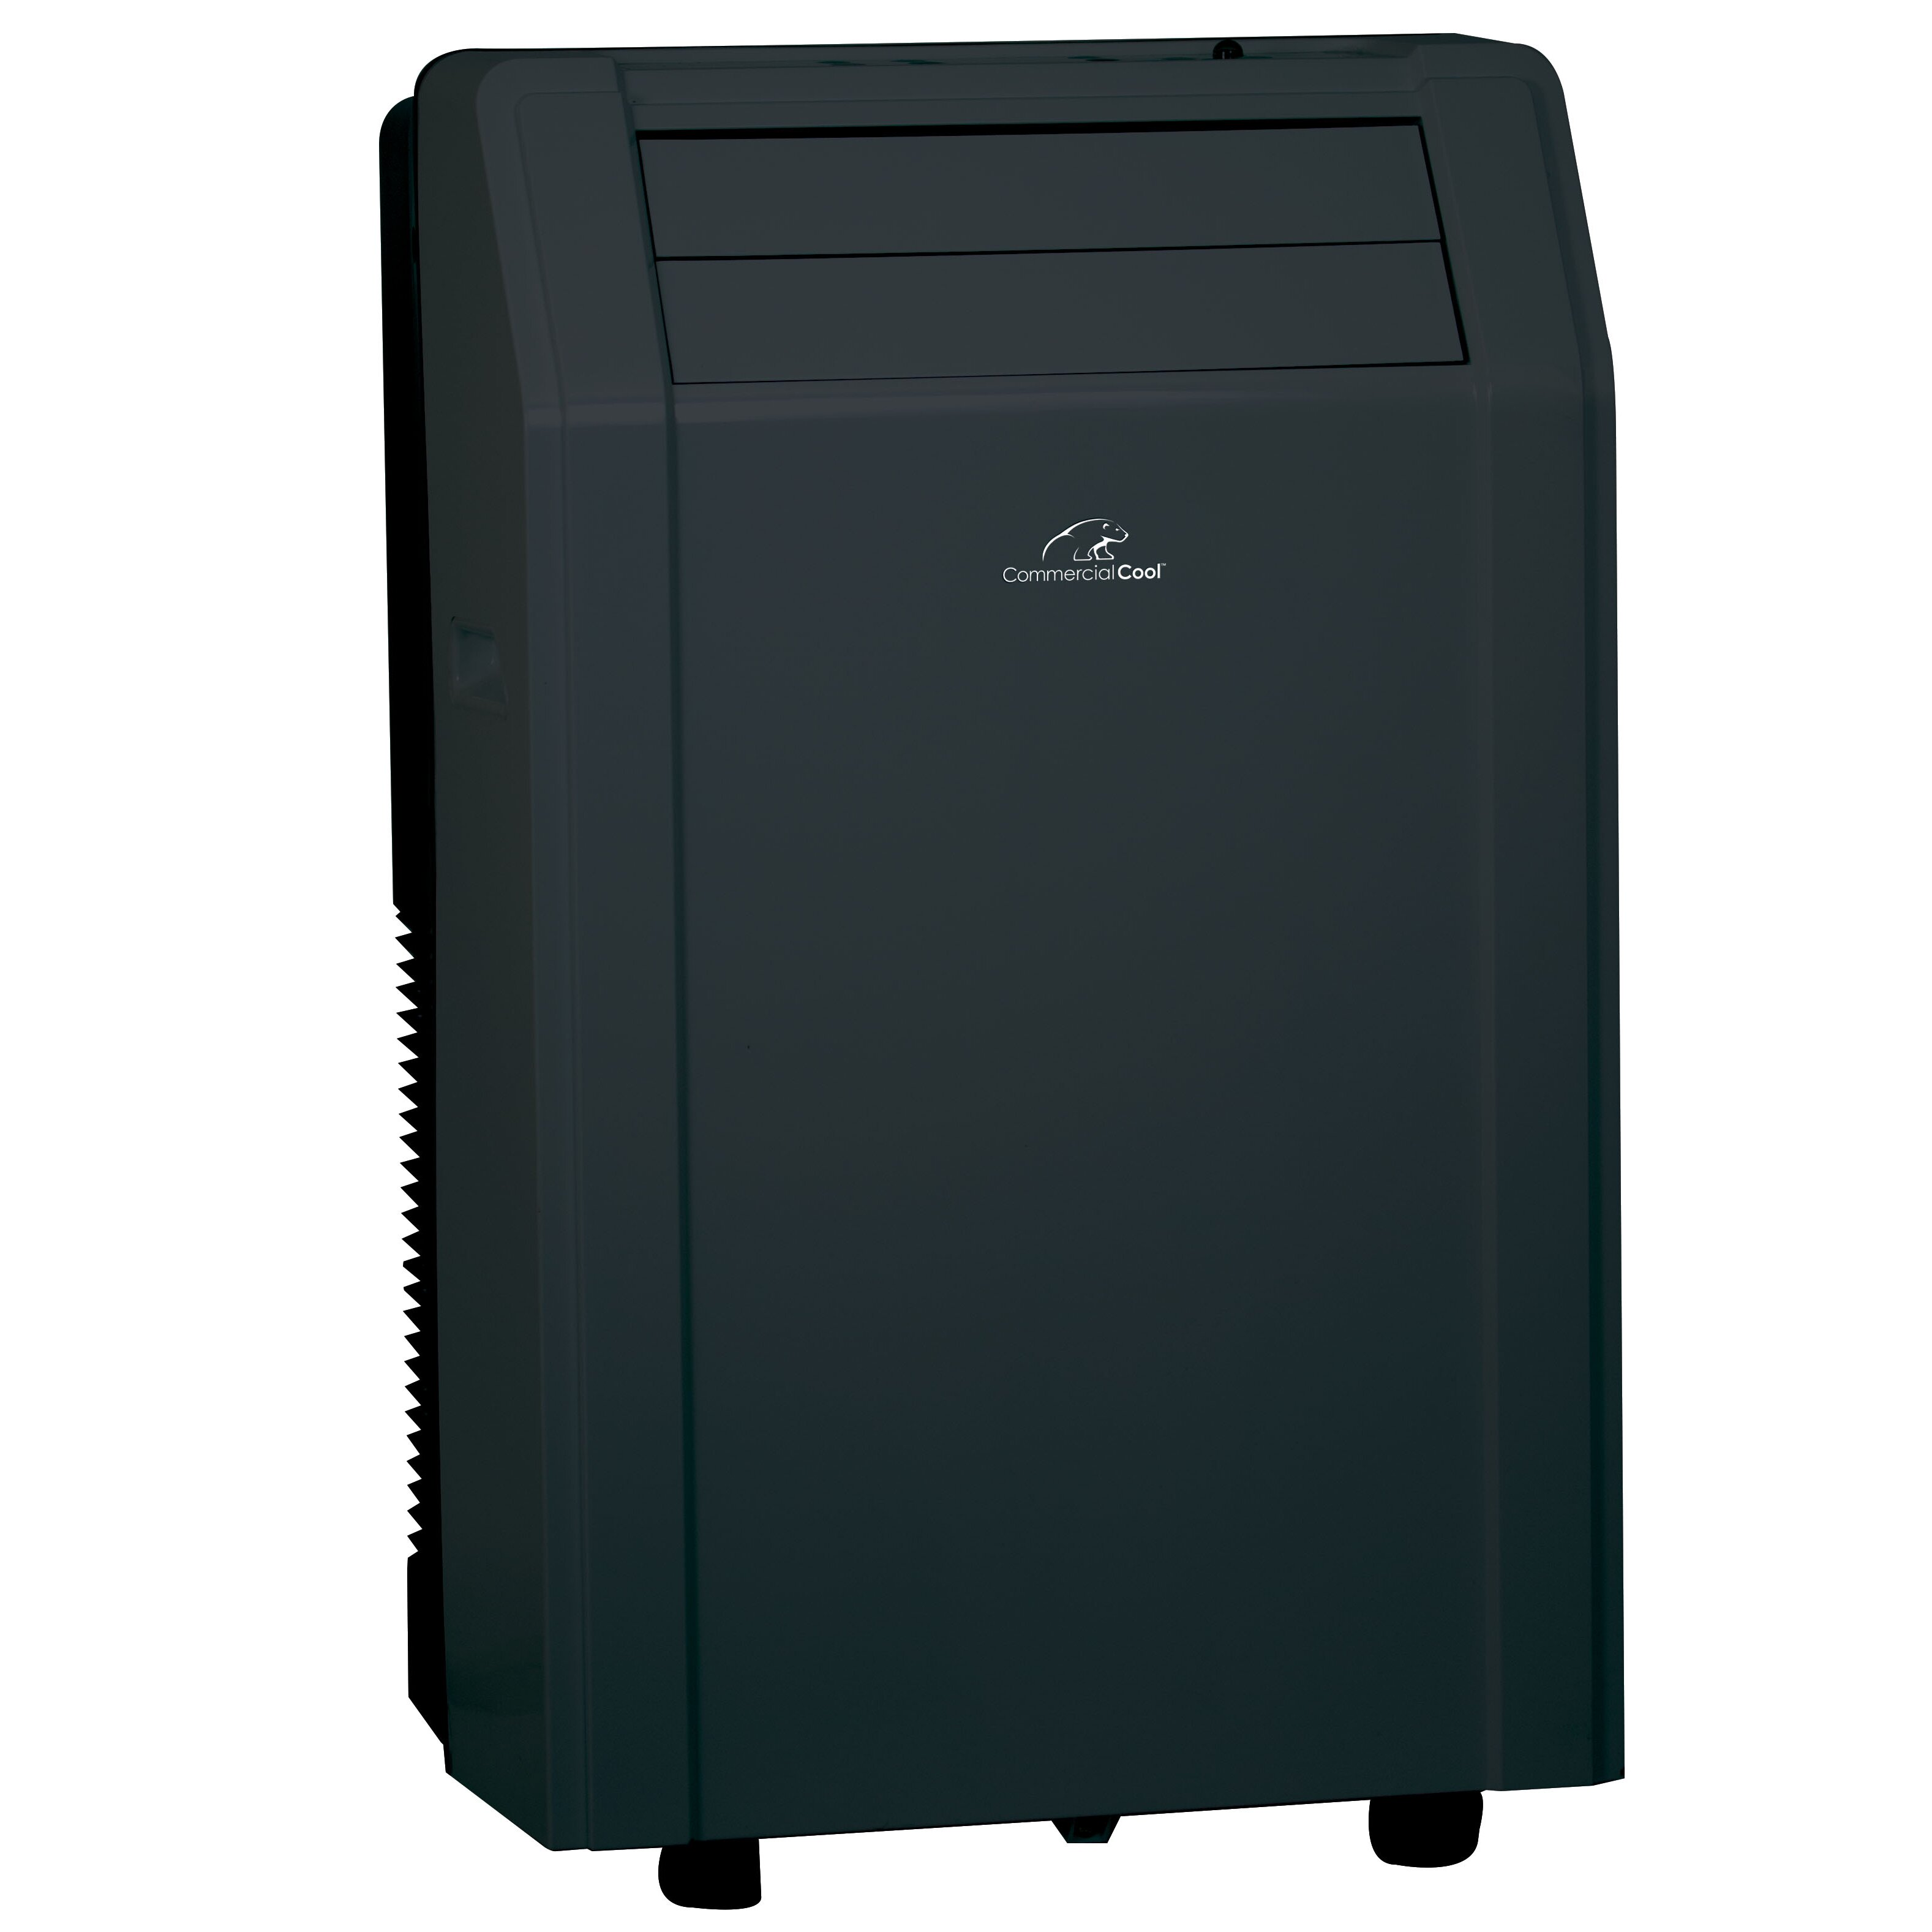 Commercial Cool 12 000 Btu Energy Star Portable Air